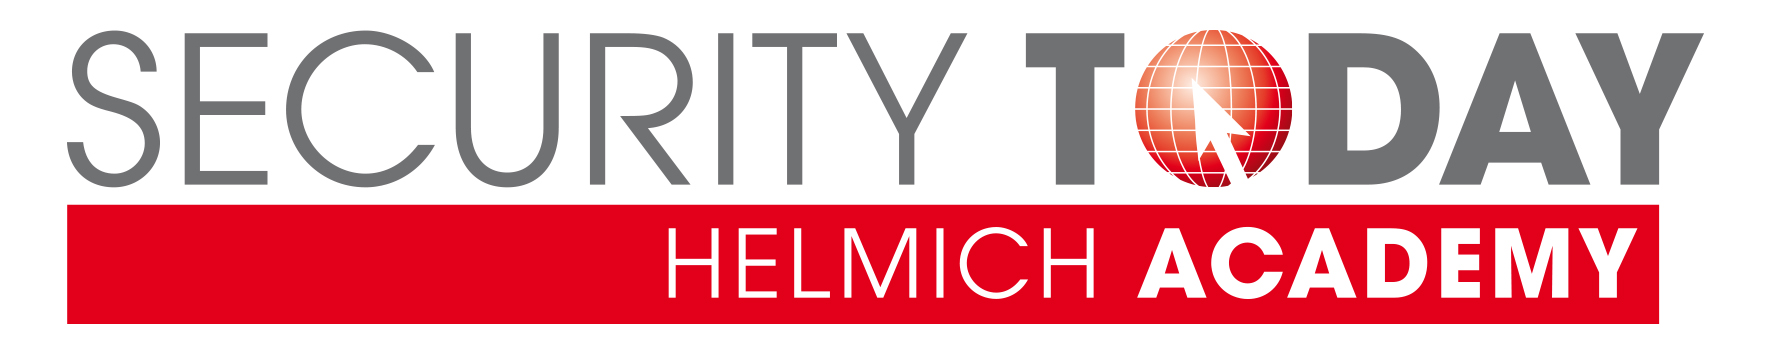 Helmich Academy - Security Today